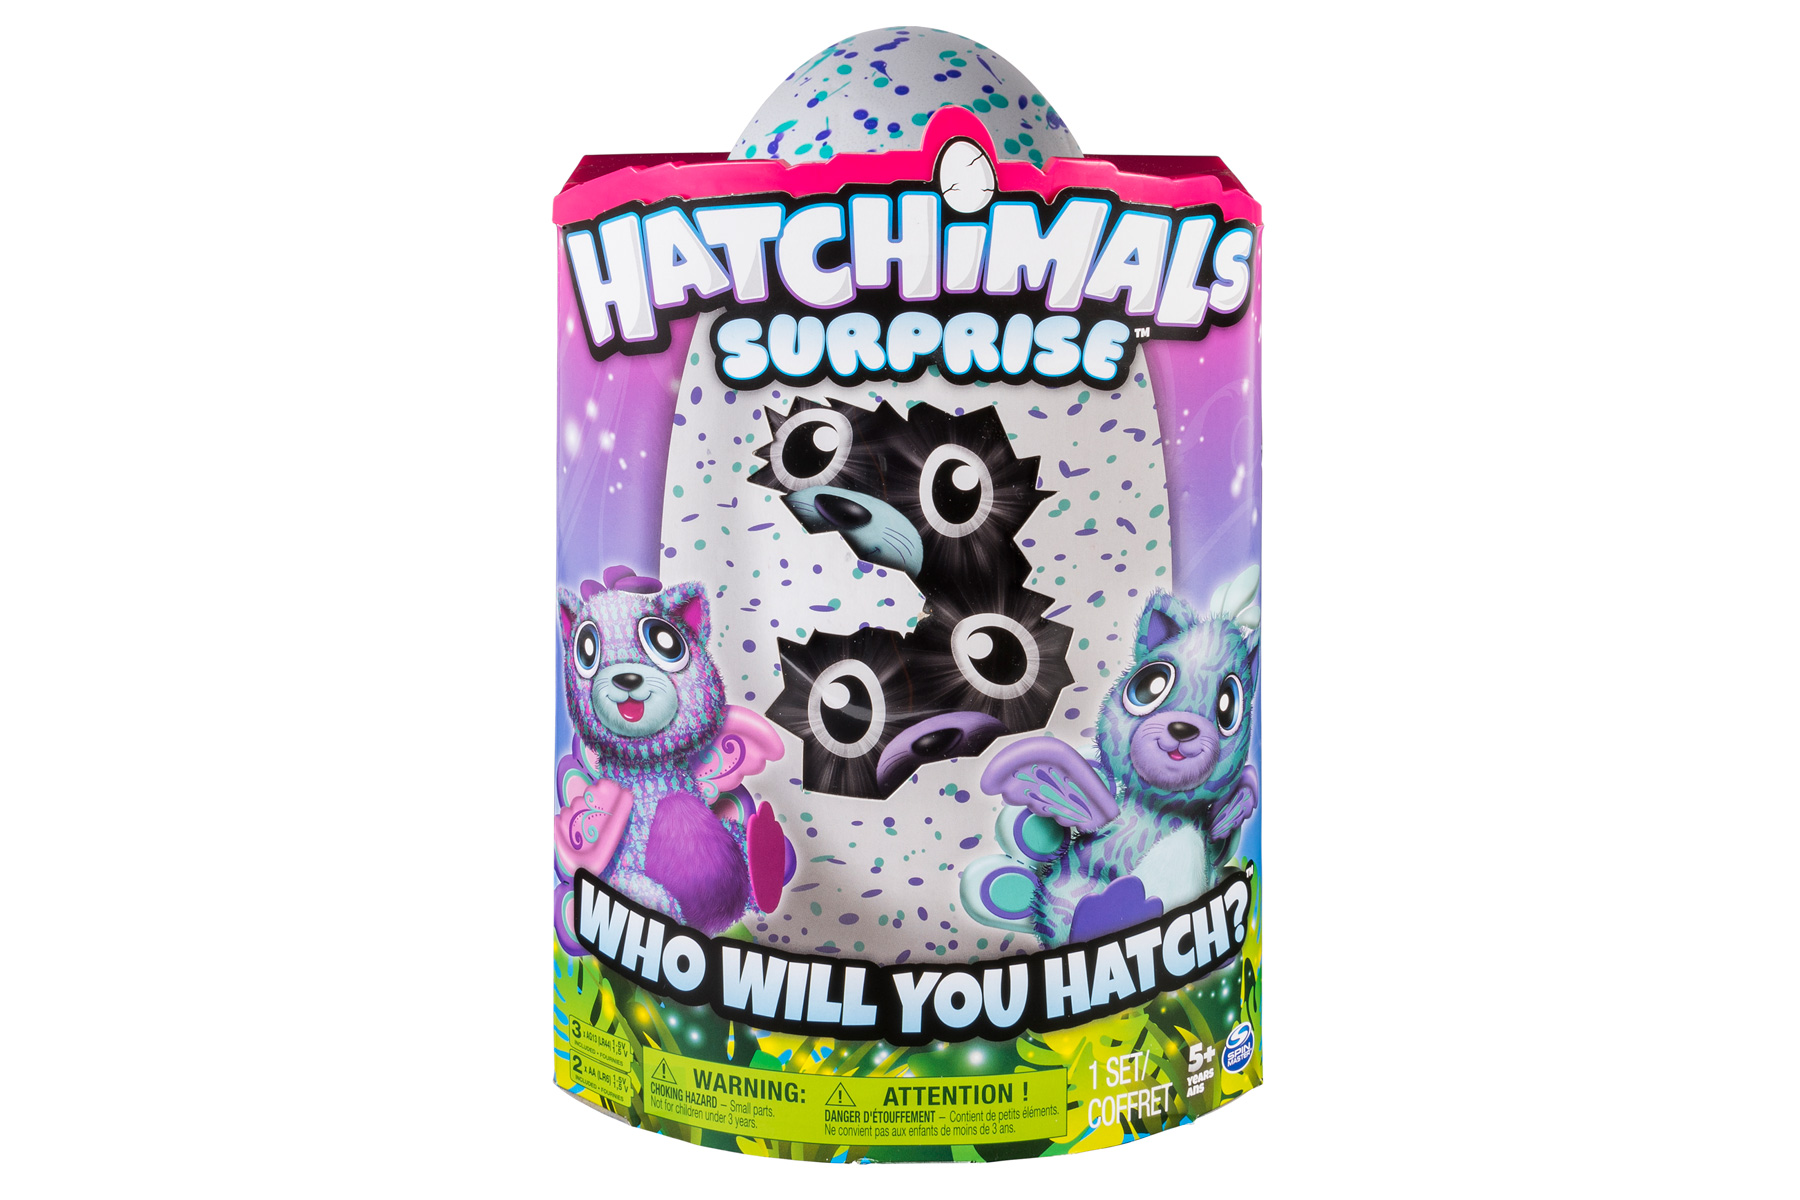 Hatchimals Surprise packaging